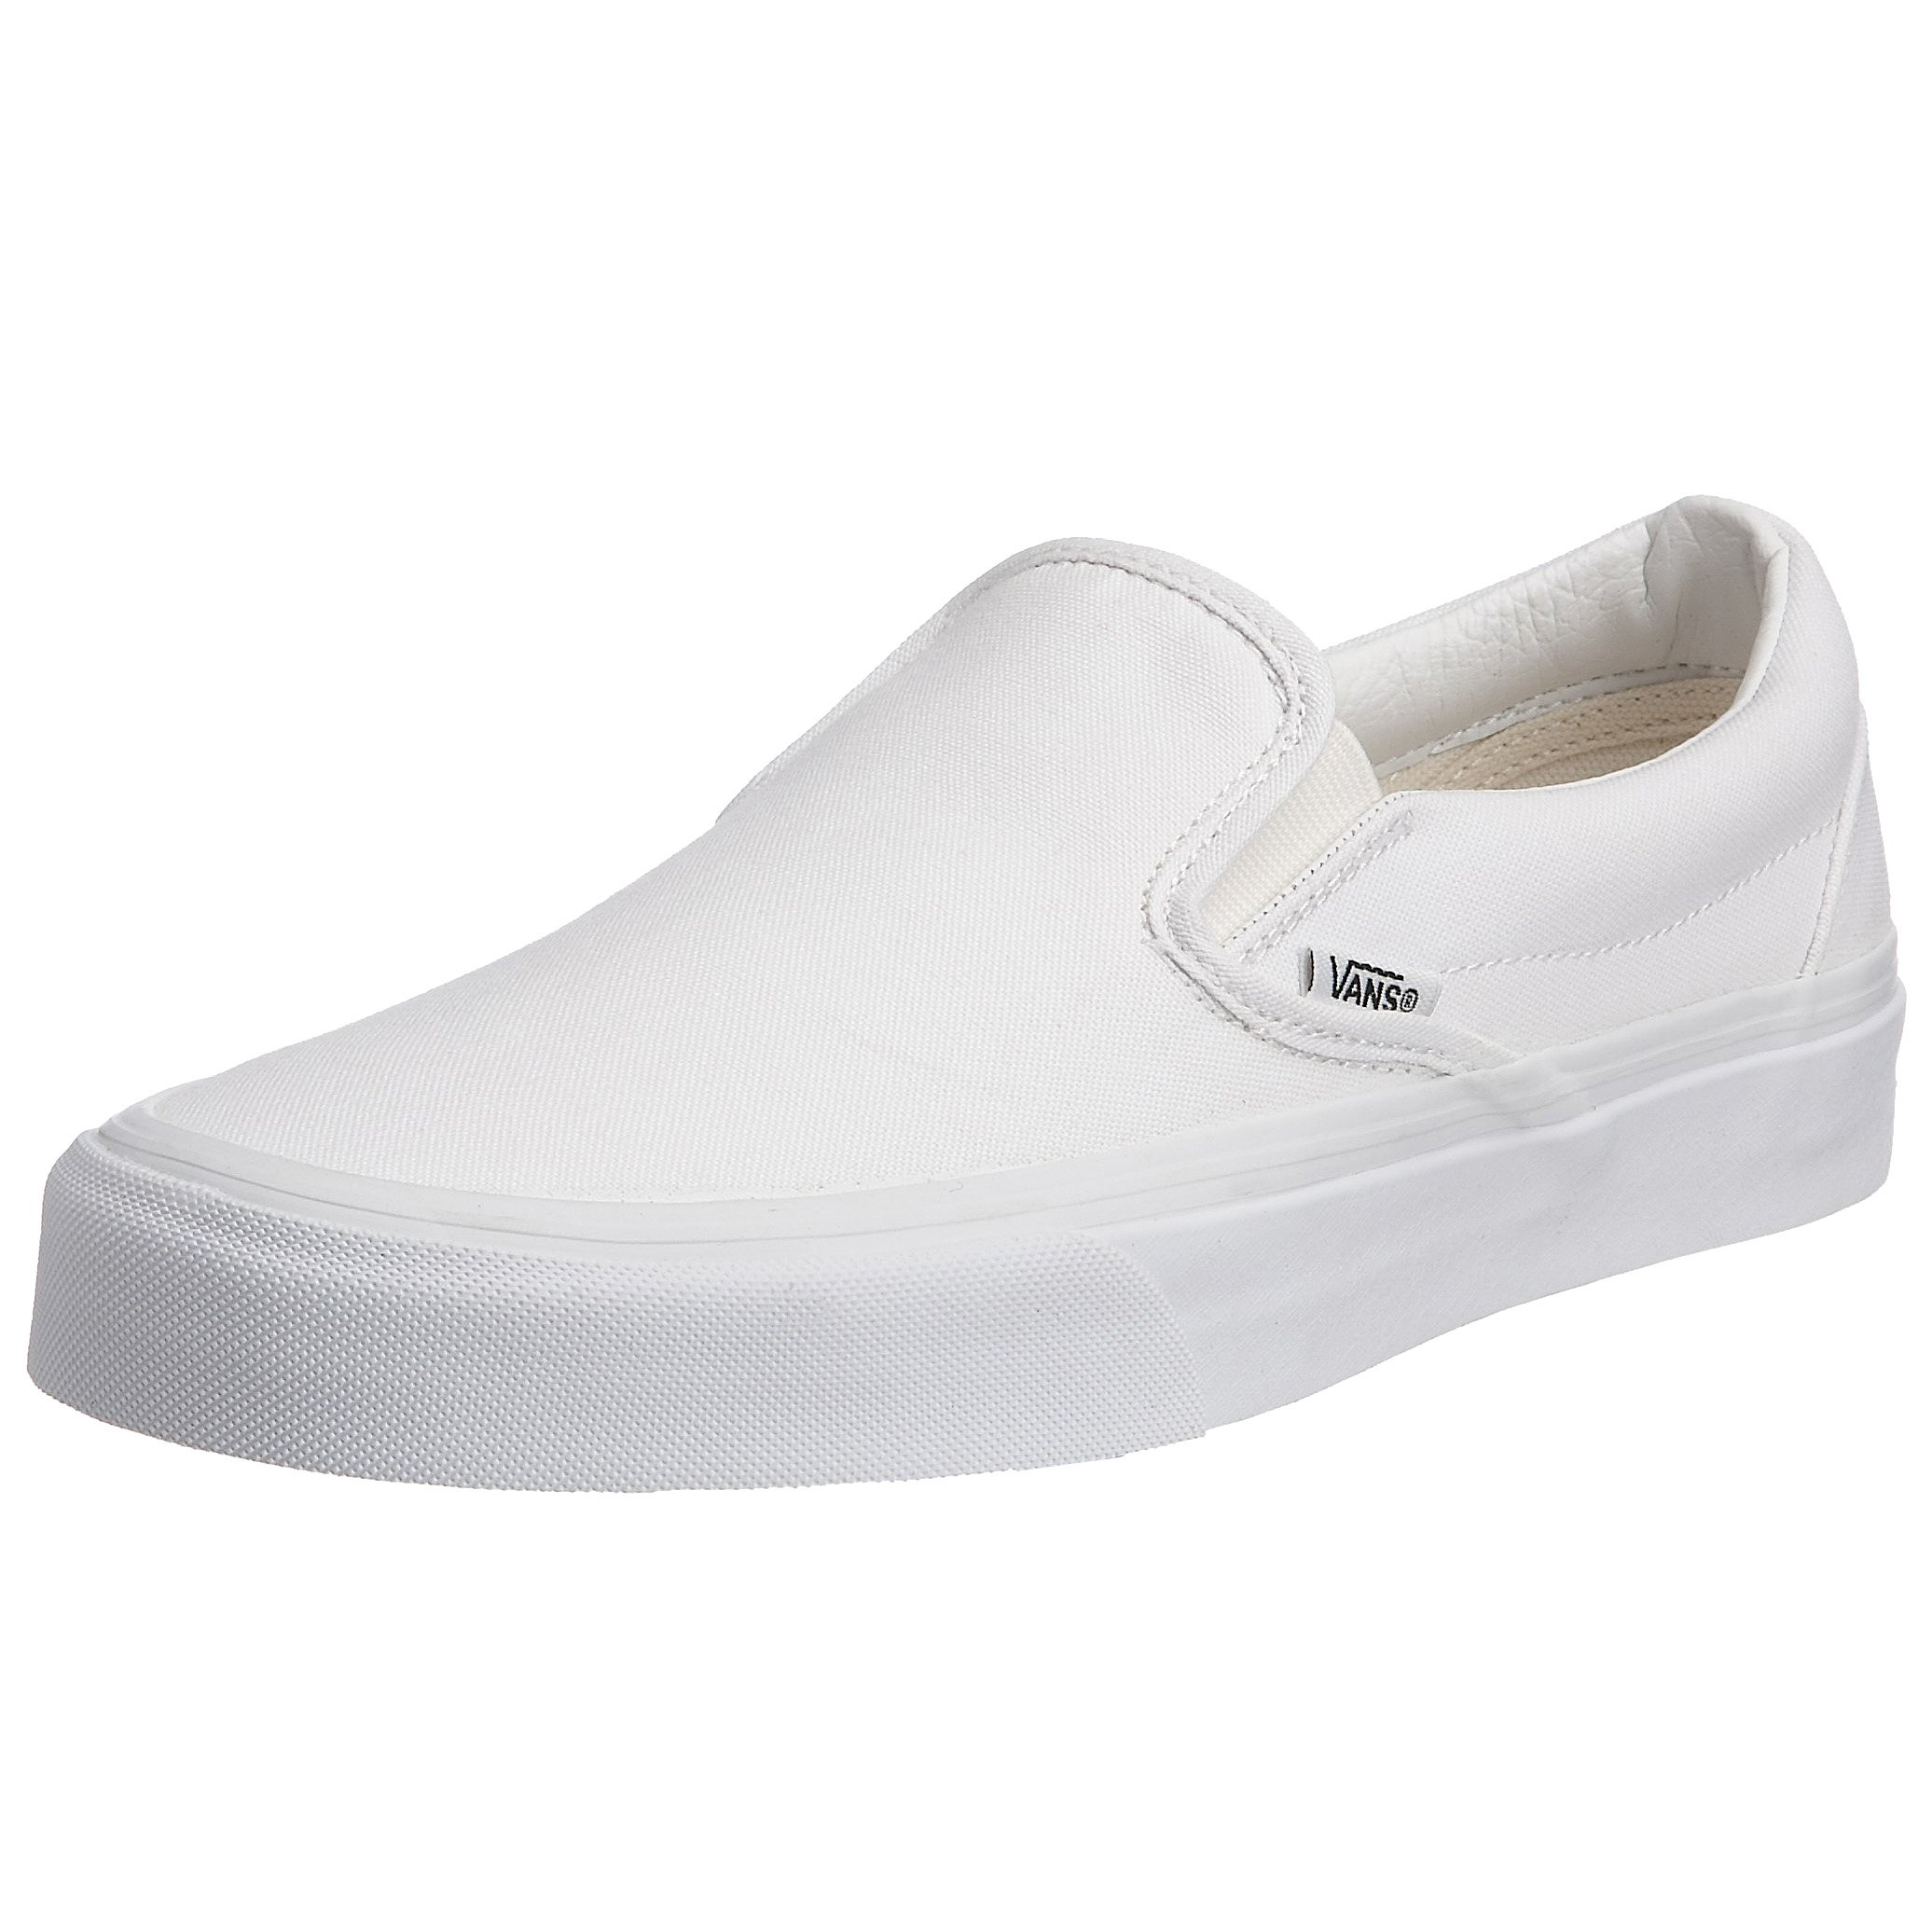 Vans Adult Classic Slip-On Core Classics, True White, Men 5.5, Women 7.0 by Vans